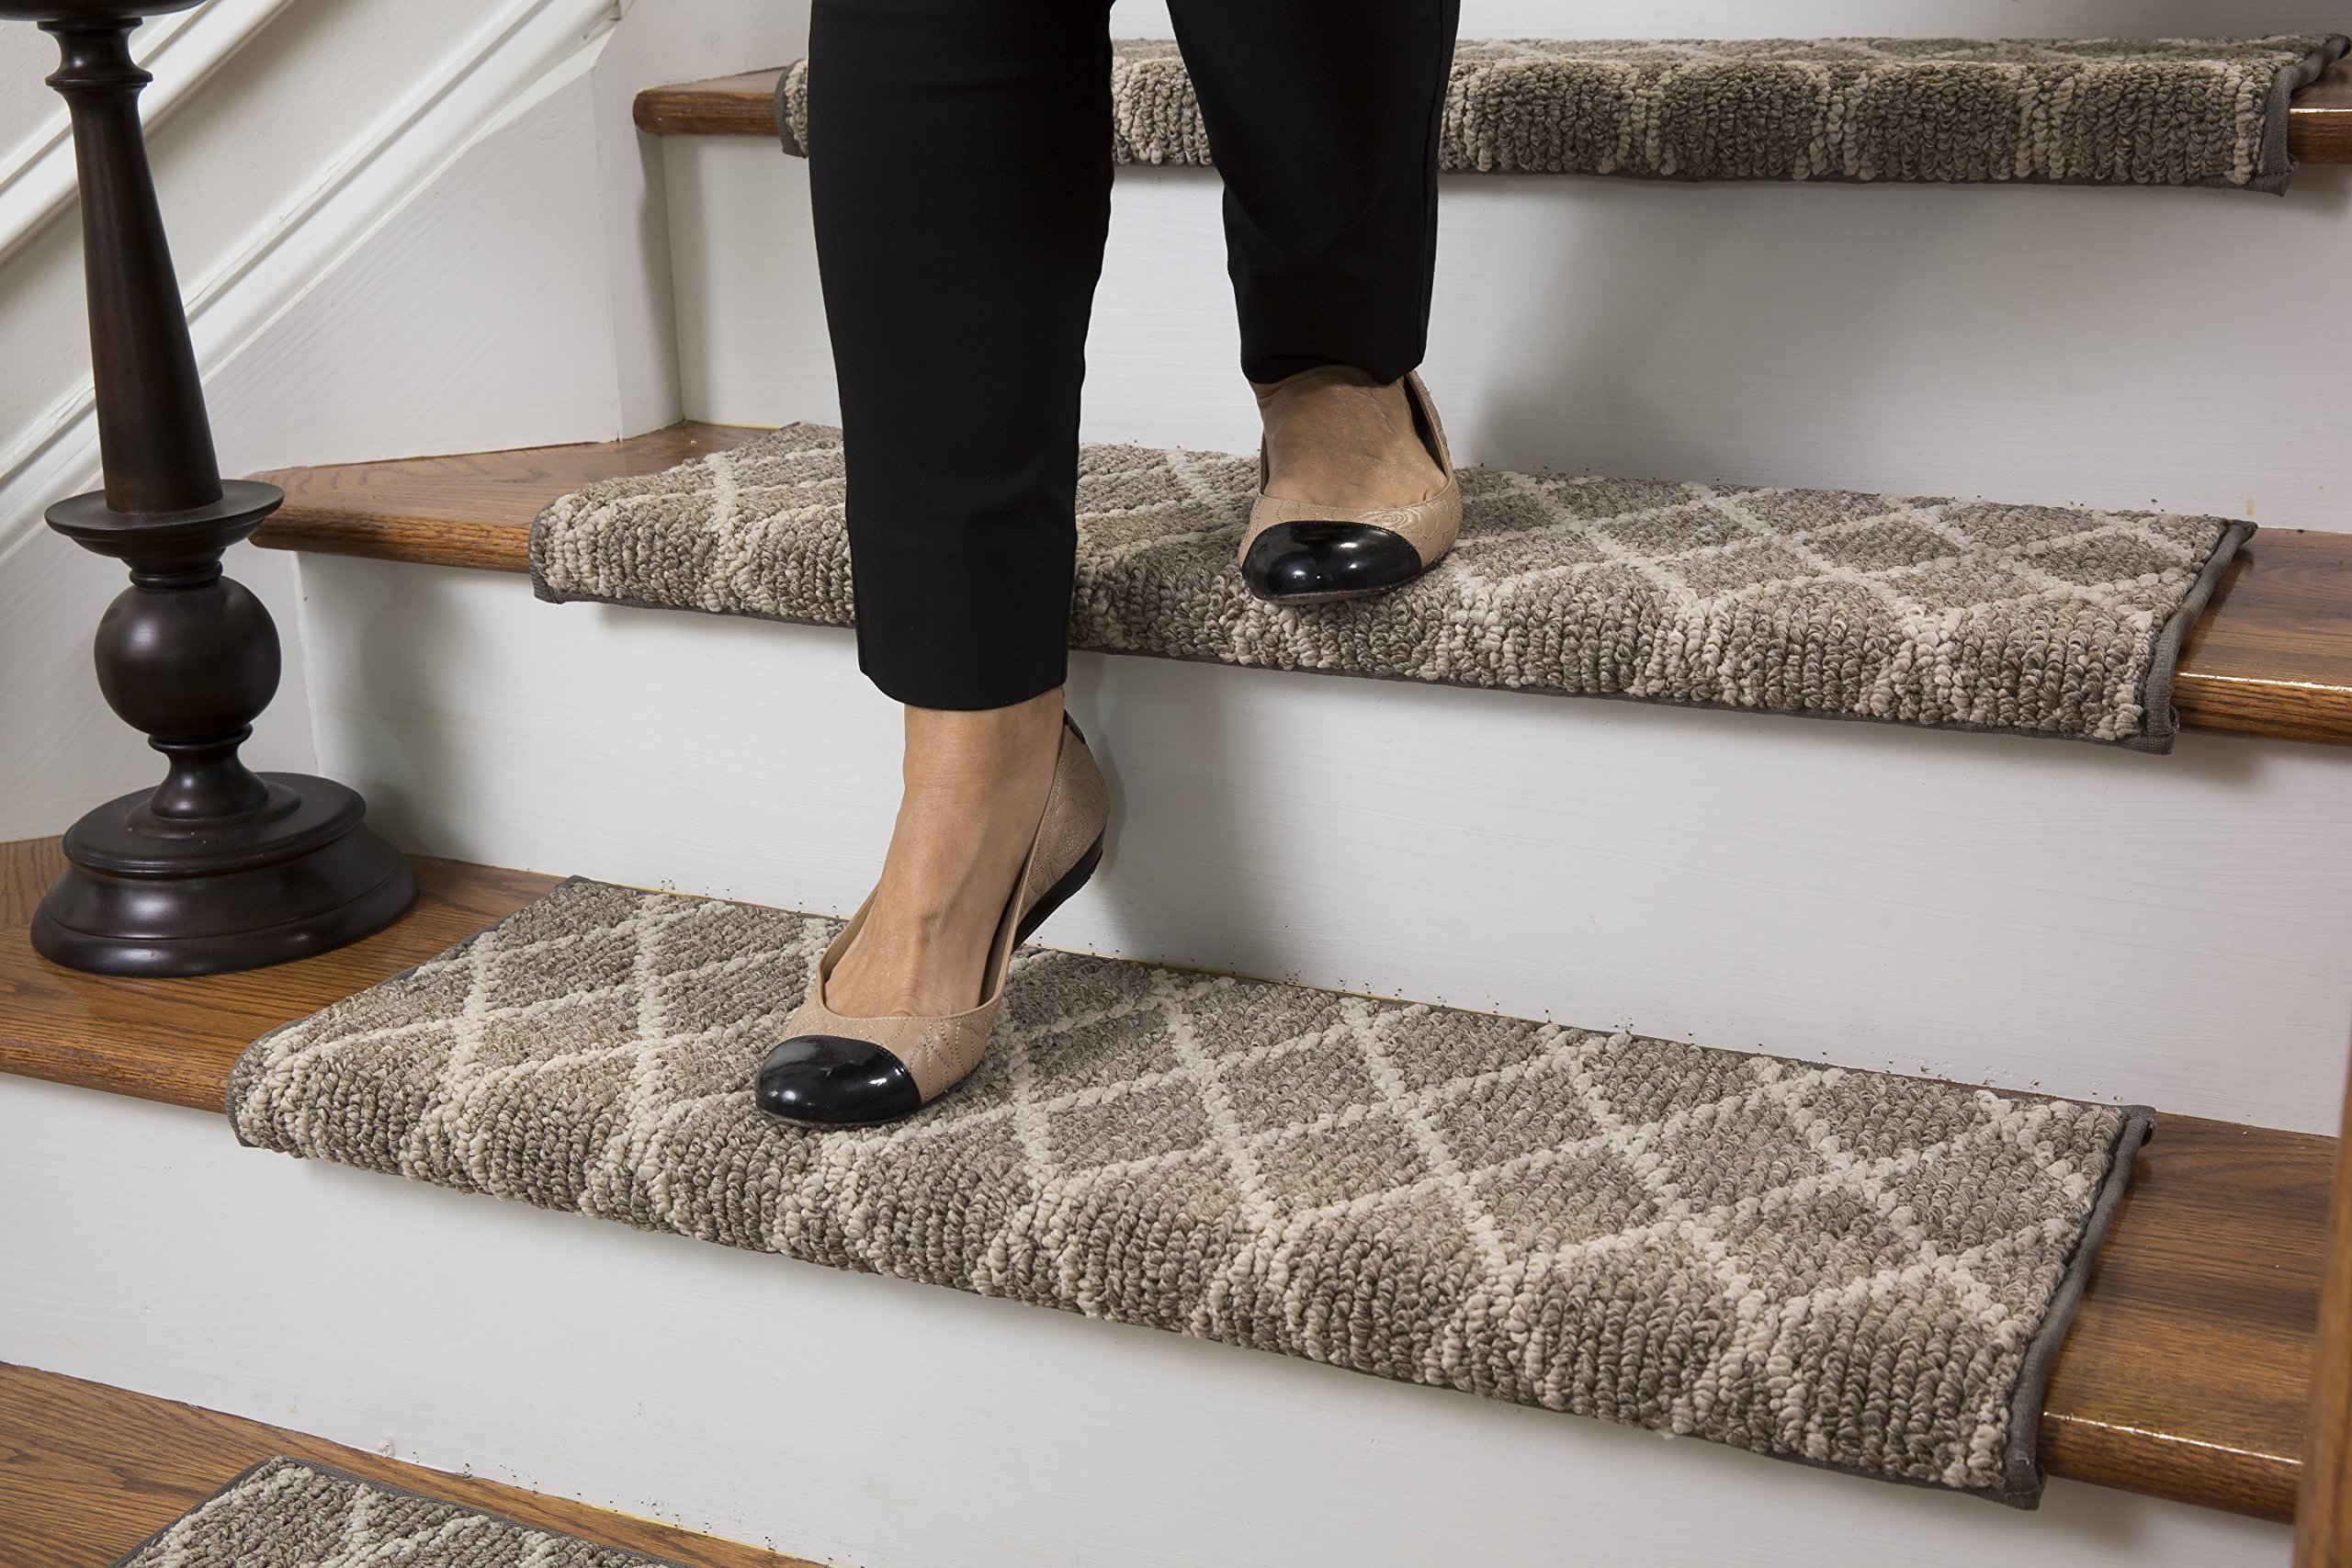 Beau Get Quotations · Jardin Wool Inspired Bullnose Carpet Stair Tread With  Adhesive Padding   Fontainebleau, By Tread Comfort